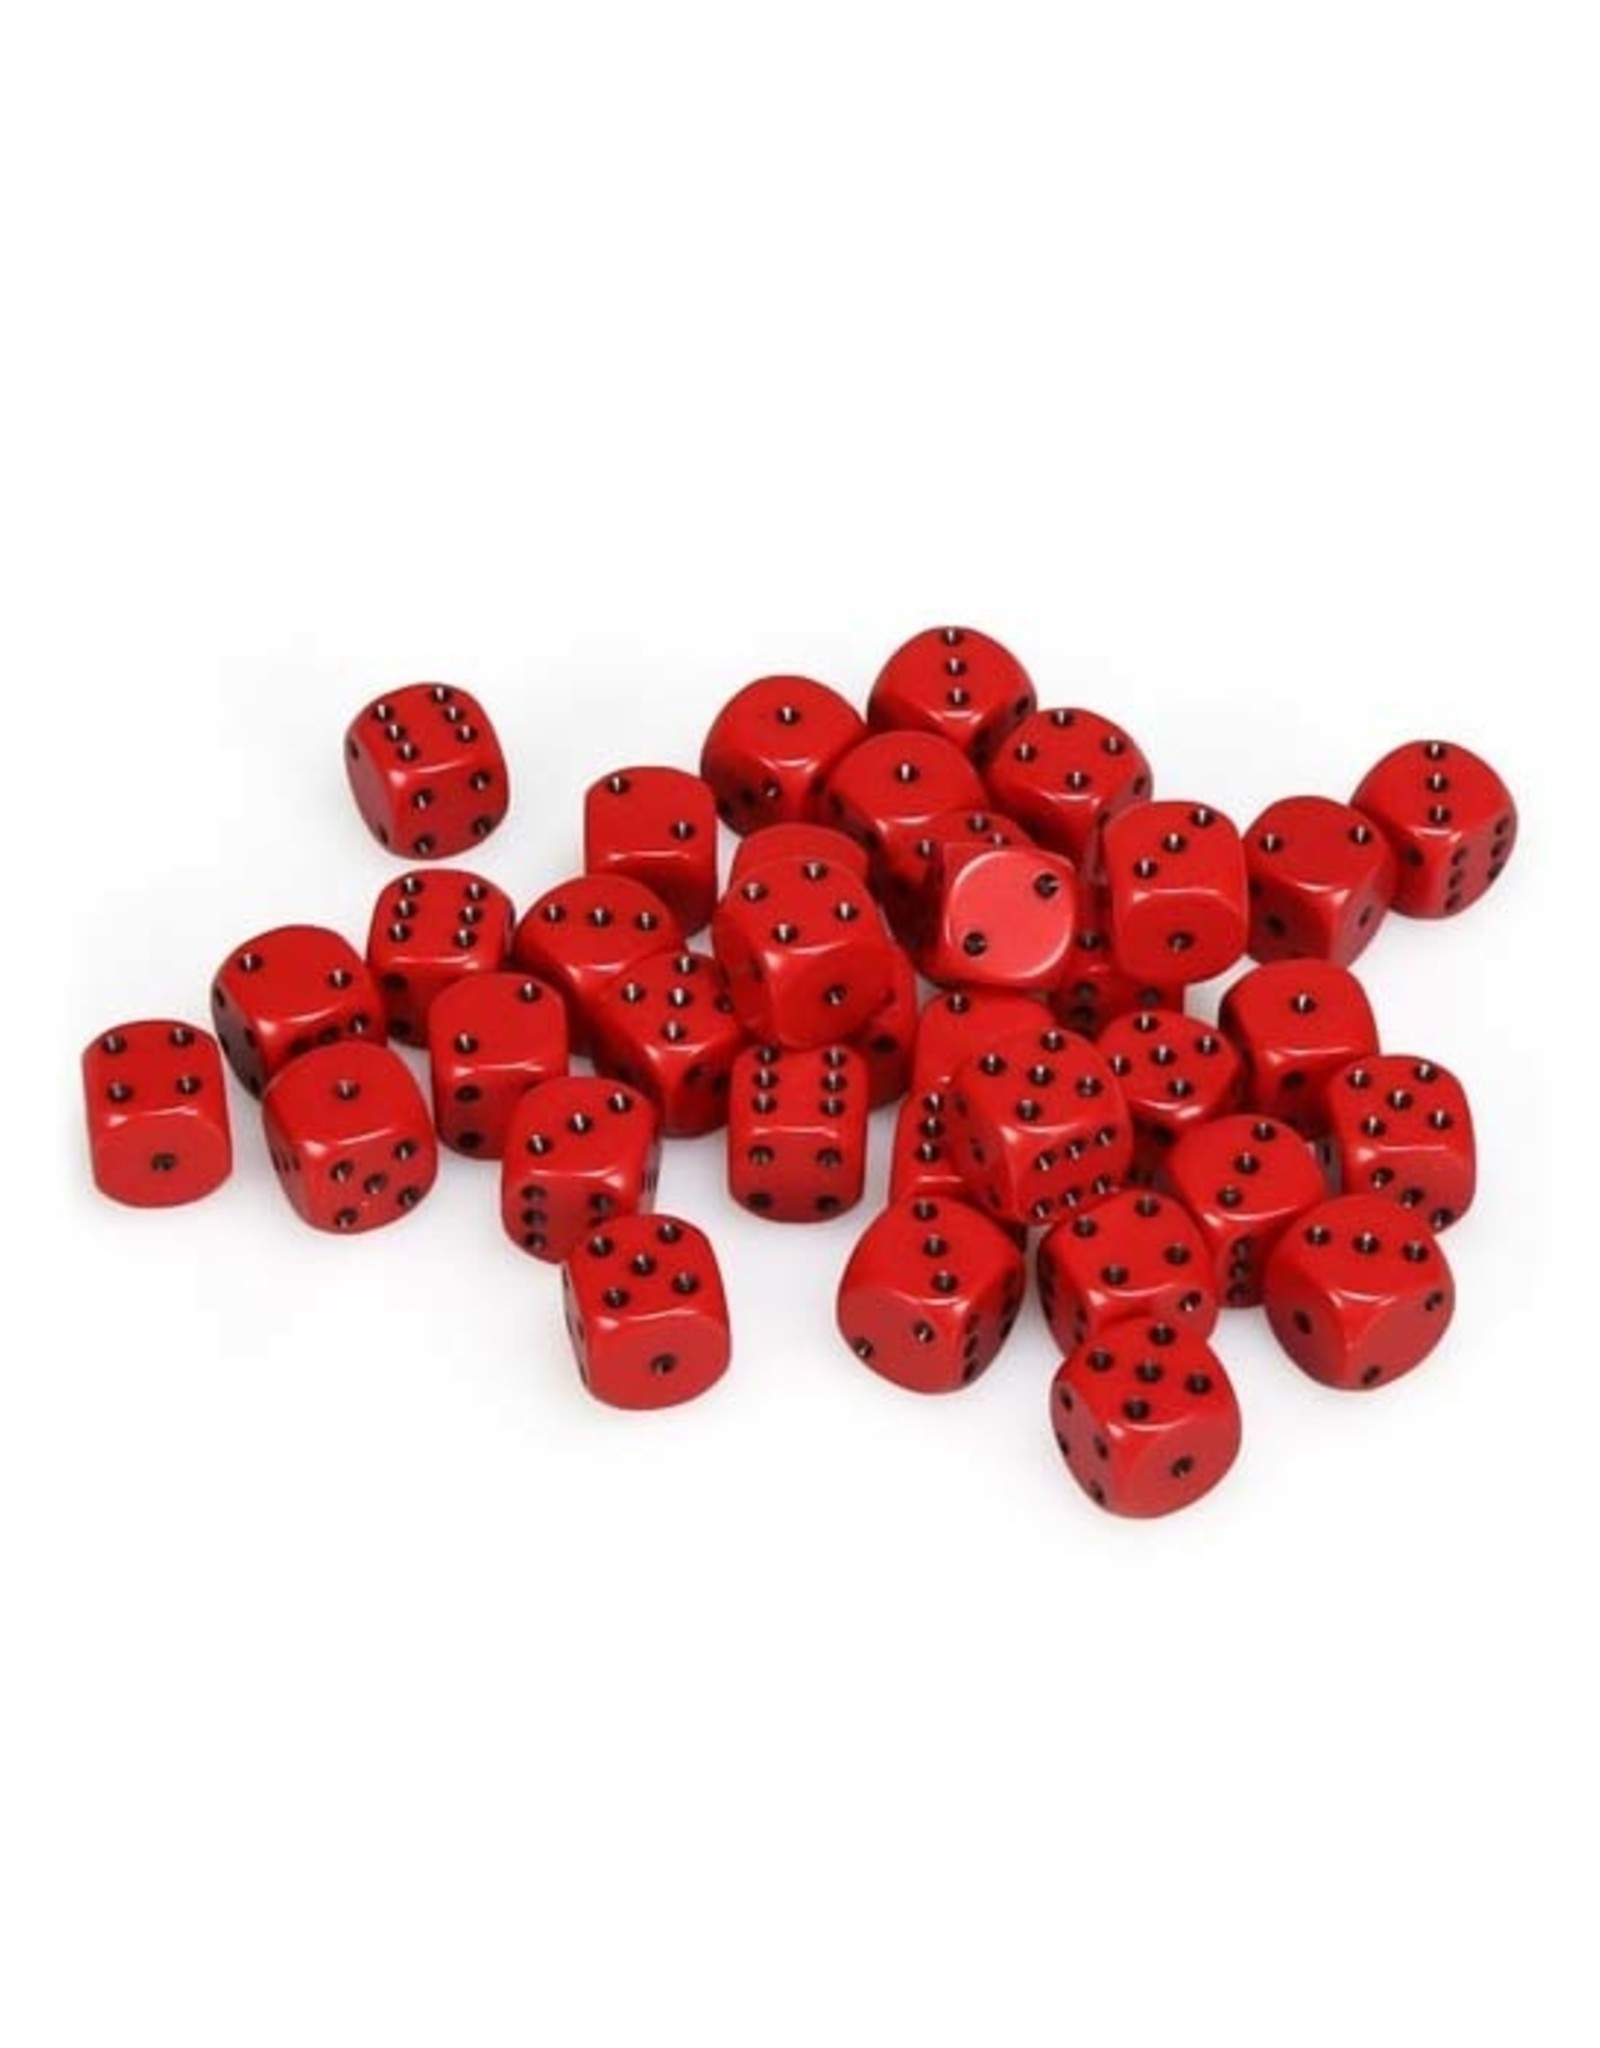 Chessex Chessex: 12mm D6 - Opaque - Red w/ Black